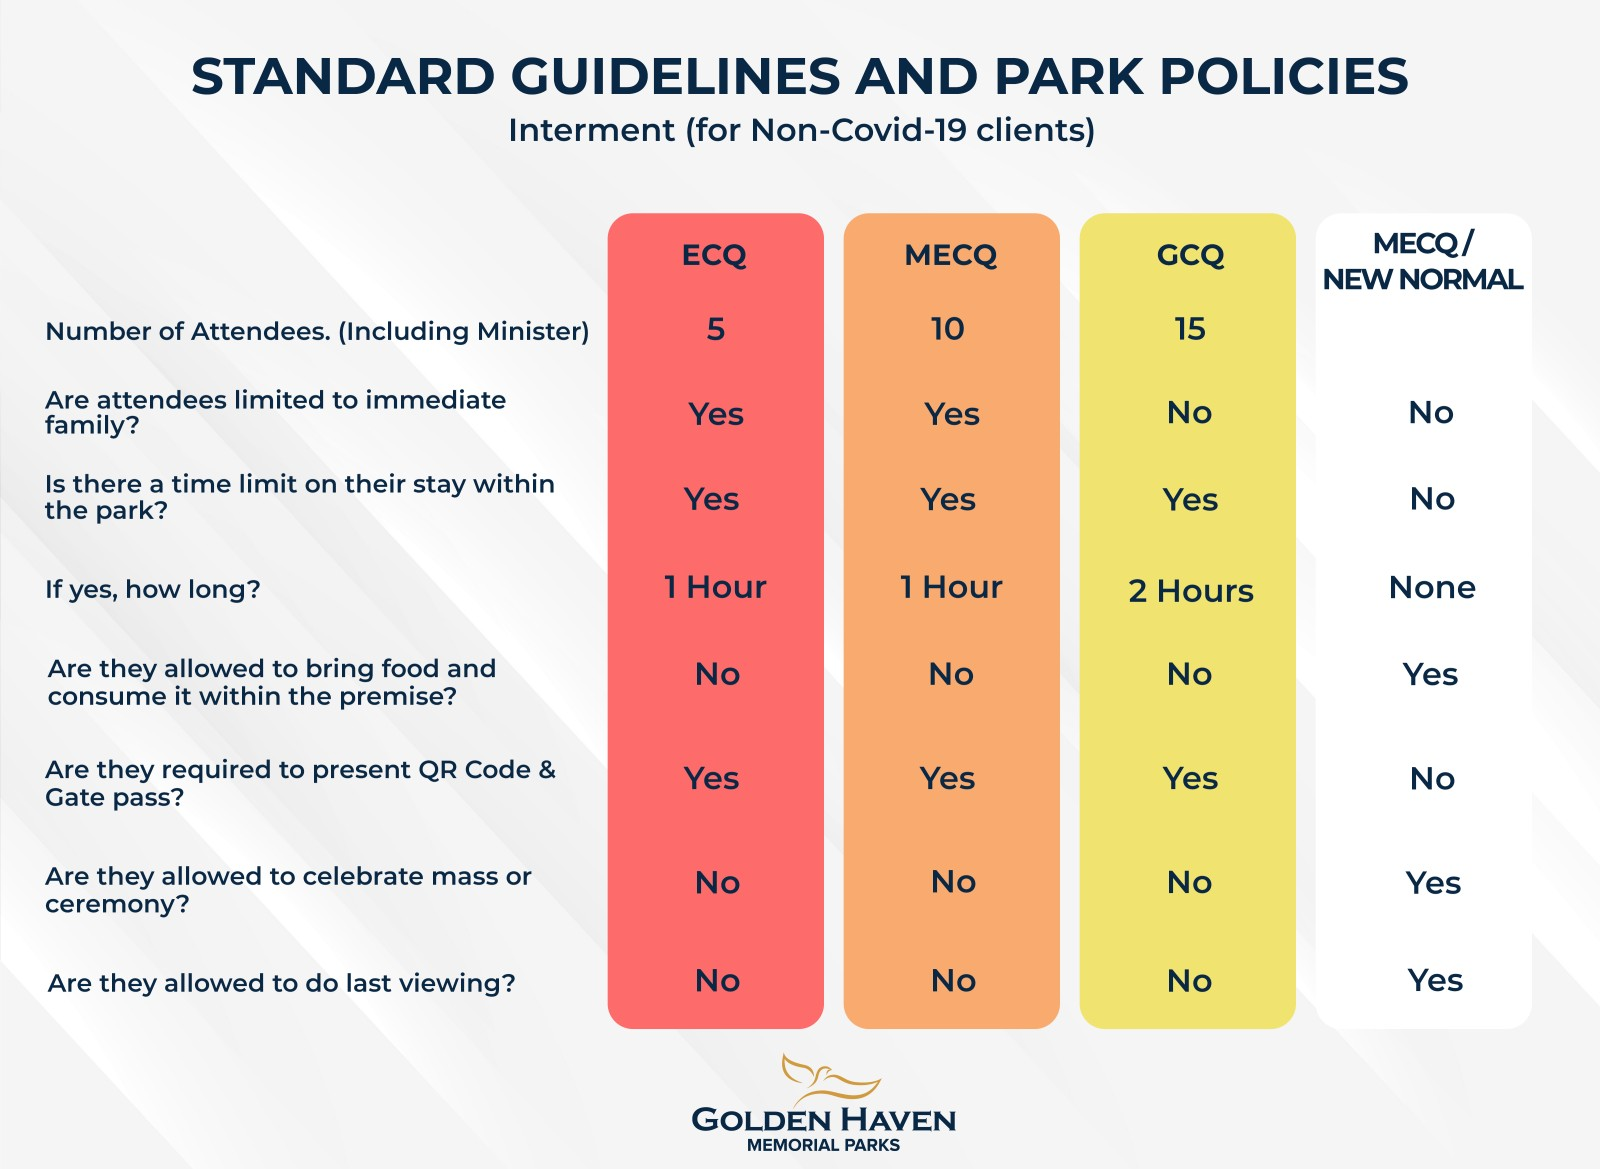 Different Quarantine Classifications for Memorial Parks and Cemeteries - Standard Guidelines and Park Policies